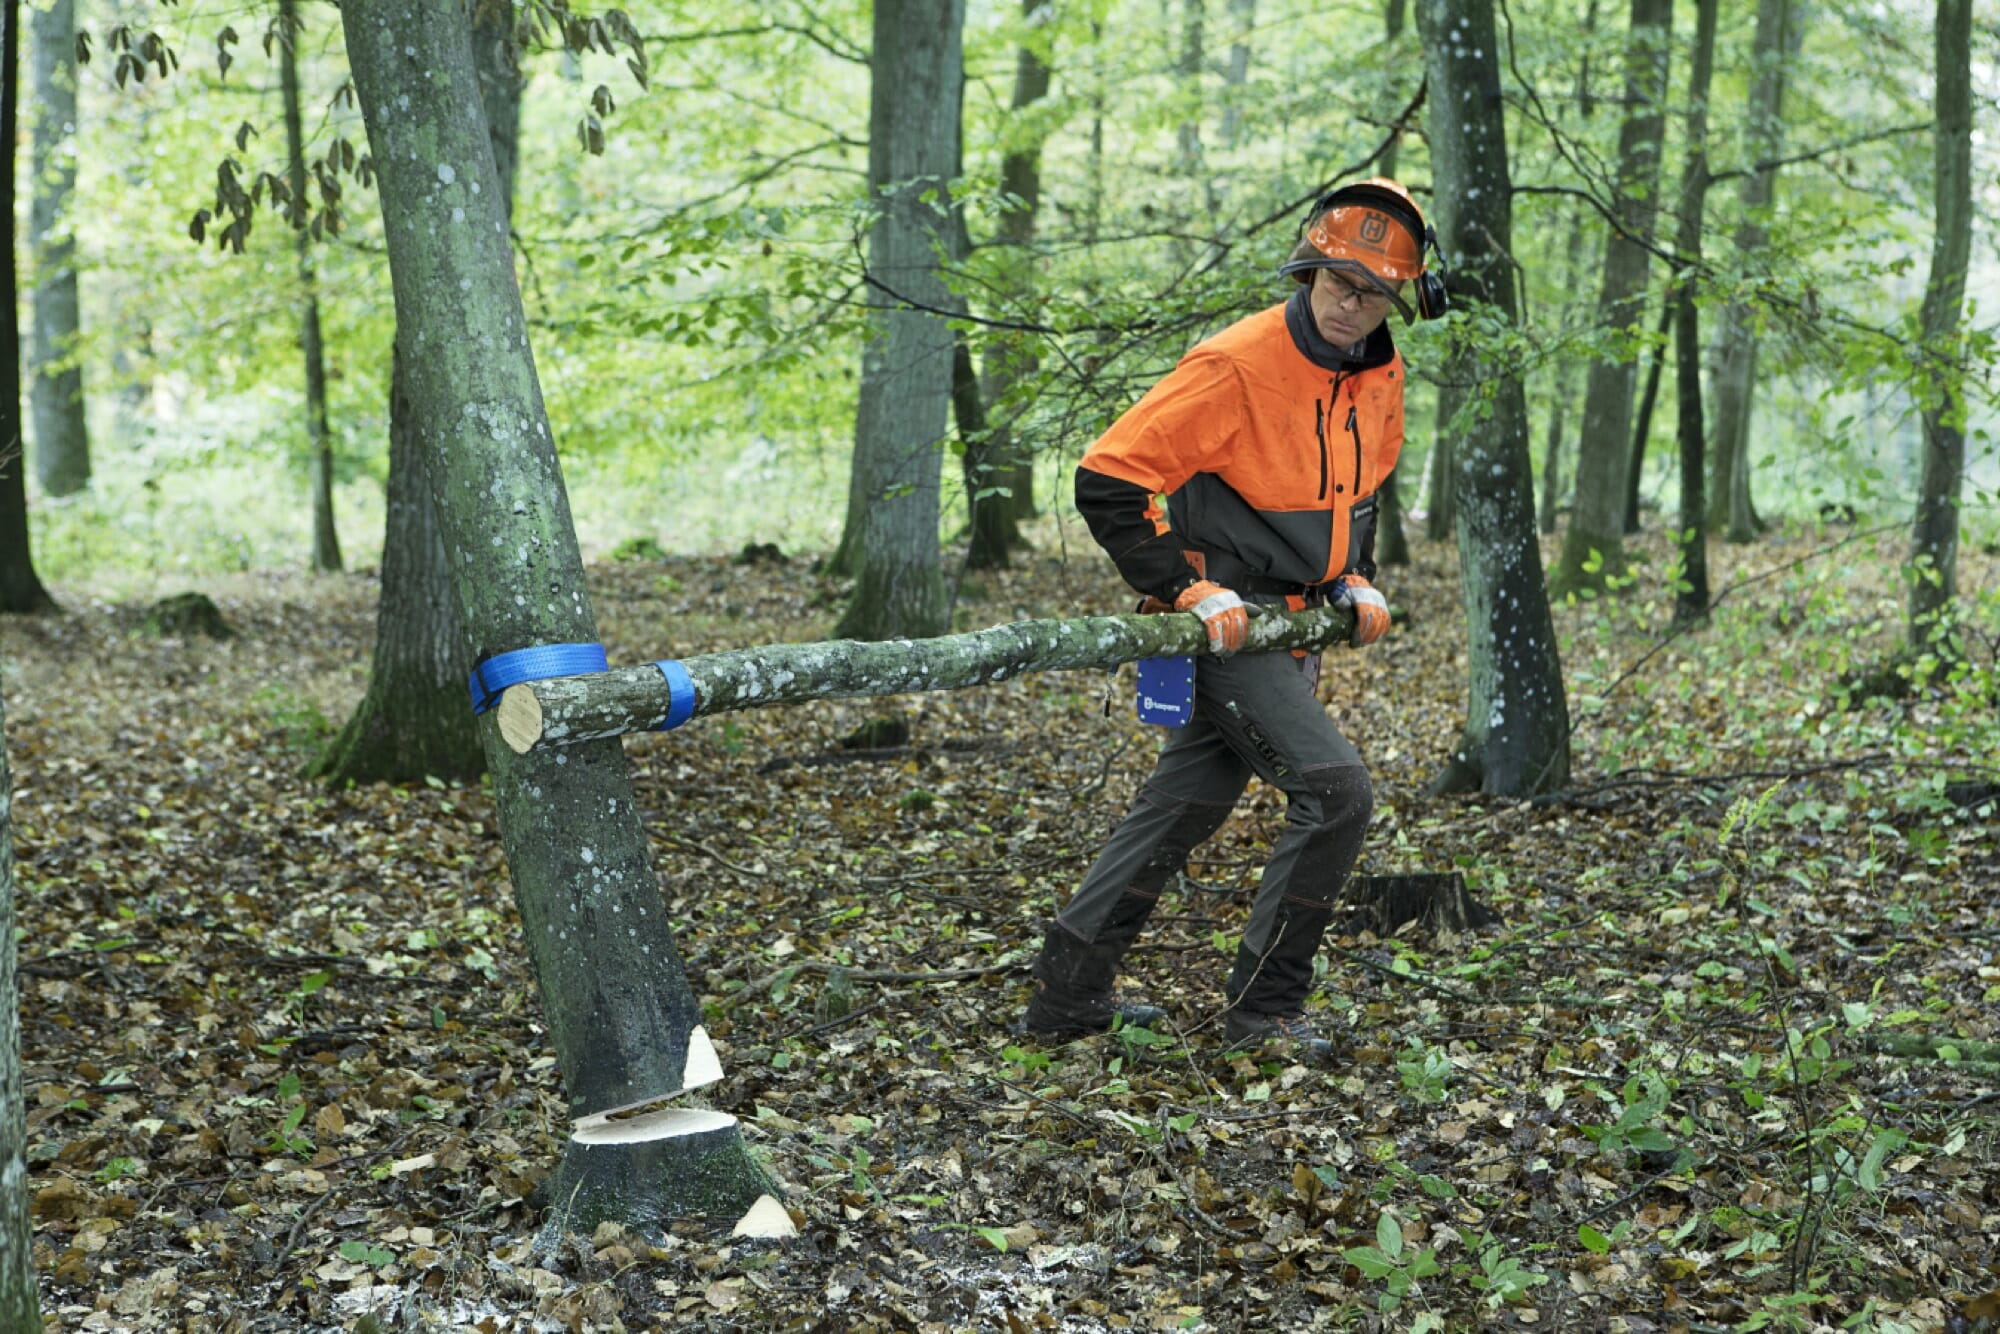 Forestry worker rolling down the tree using a turning strap attached to a branch as a lever